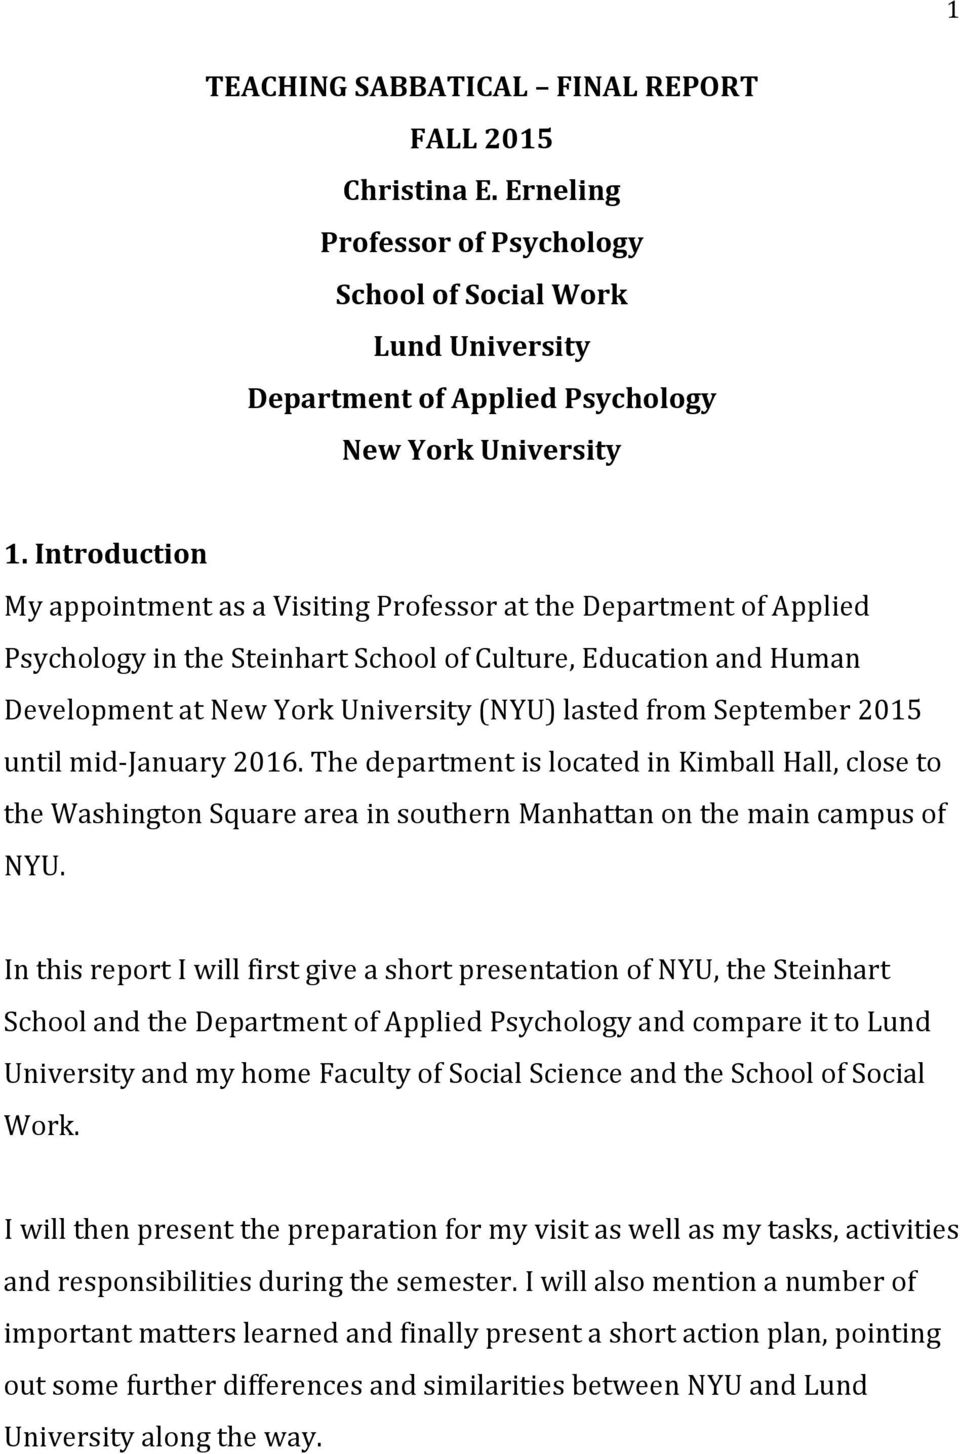 from September 2015 until mid- January 2016. The department is located in Kimball Hall, close to the Washington Square area in southern Manhattan on the main campus of NYU.